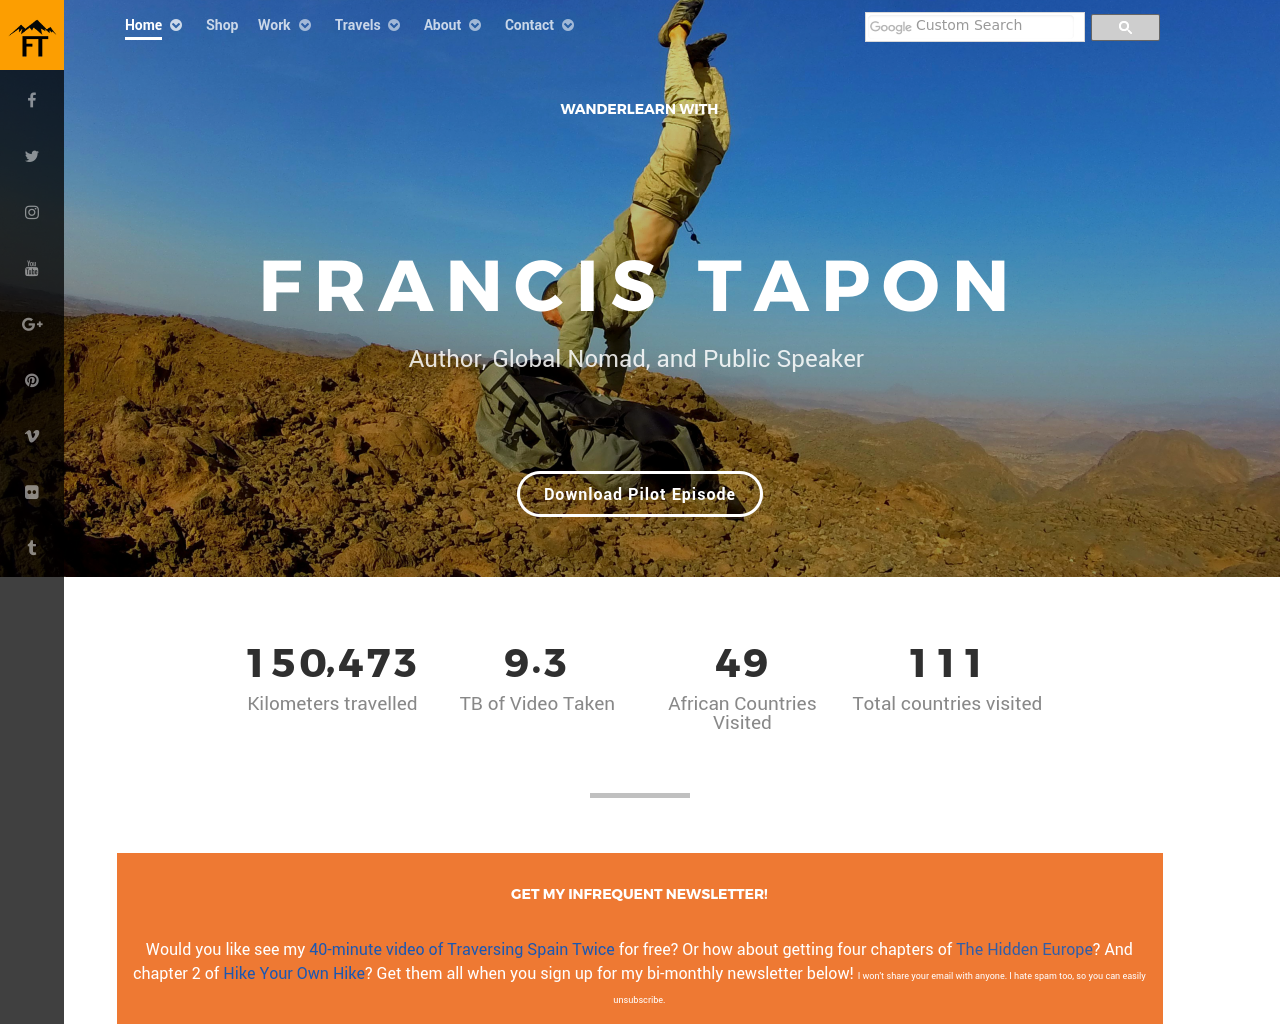 Francis-Tapon-Advertising-Reviews-Pricing